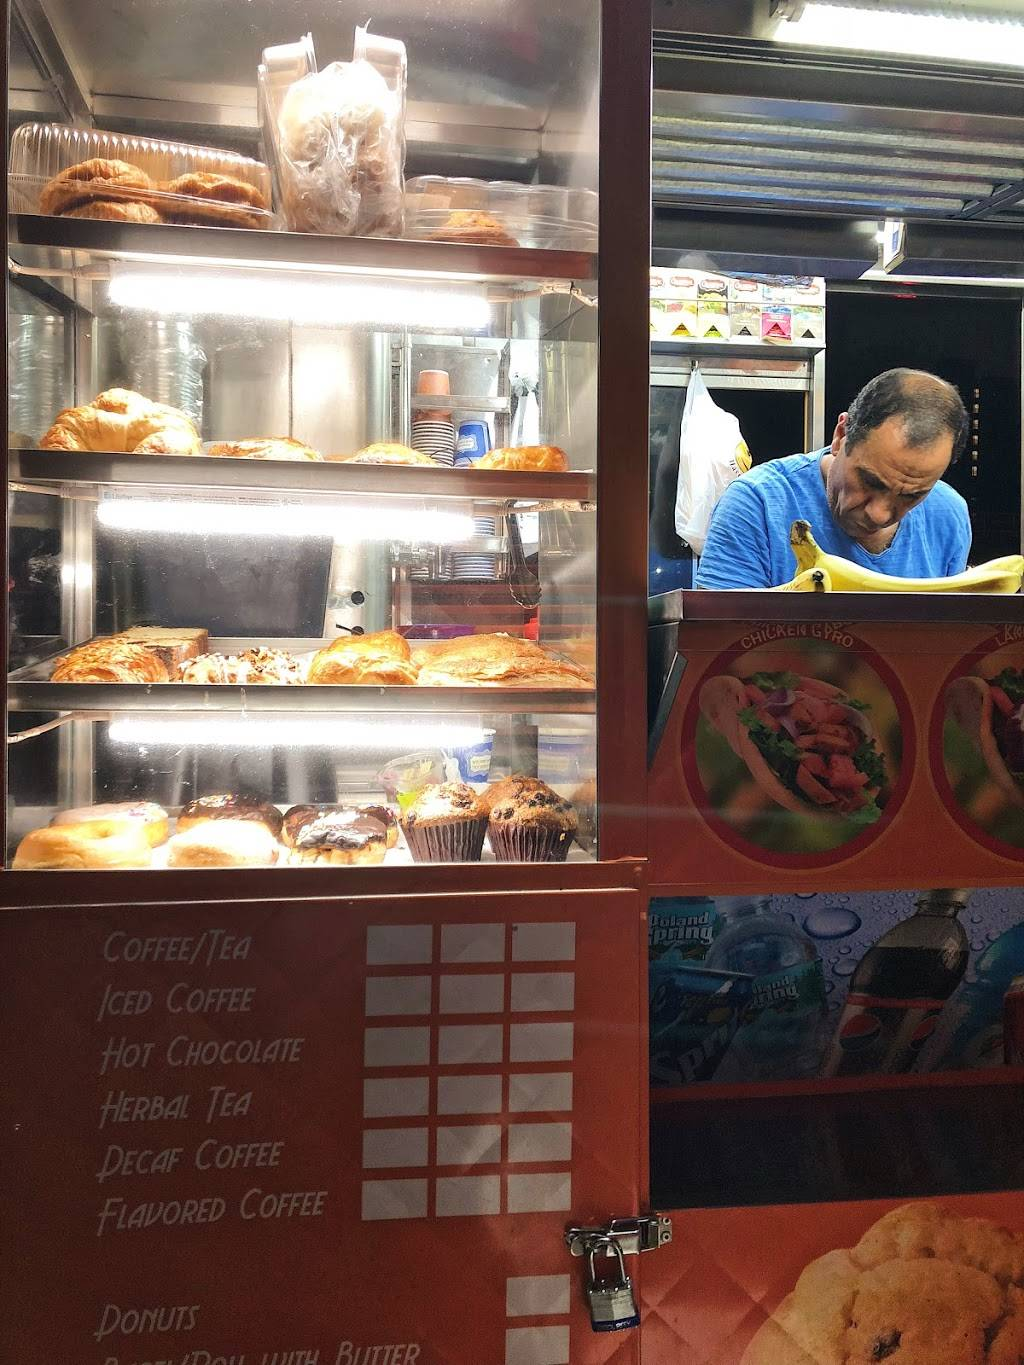 The Halal Food Truck | restaurant | 158 Delancey St, New York, NY 10002, USA